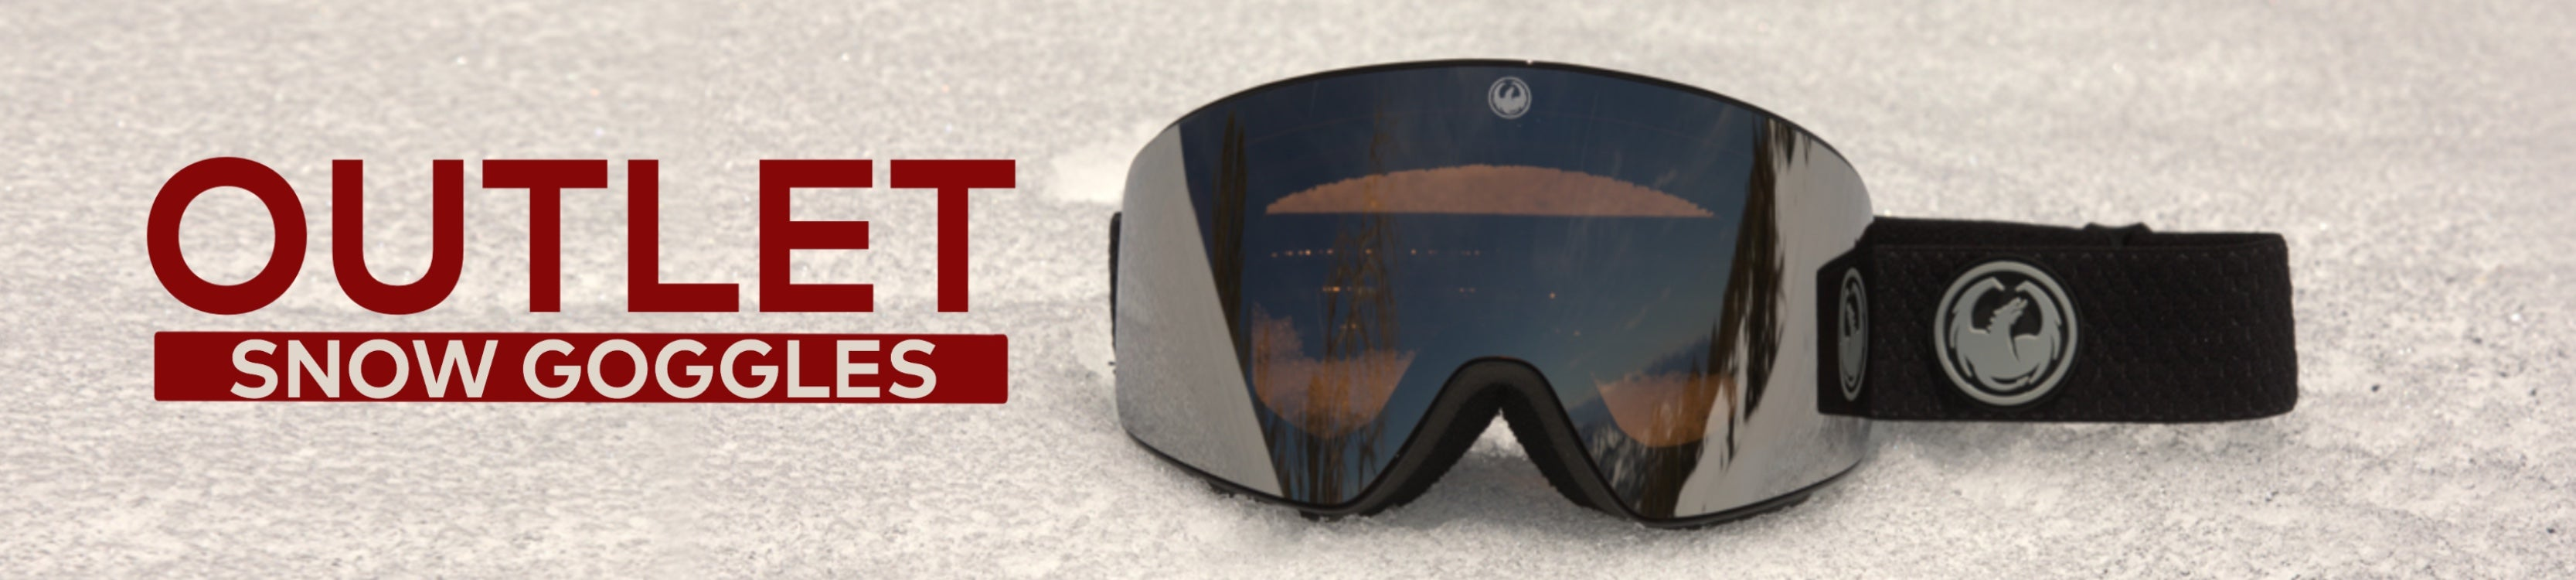 Snow Goggles Outlet